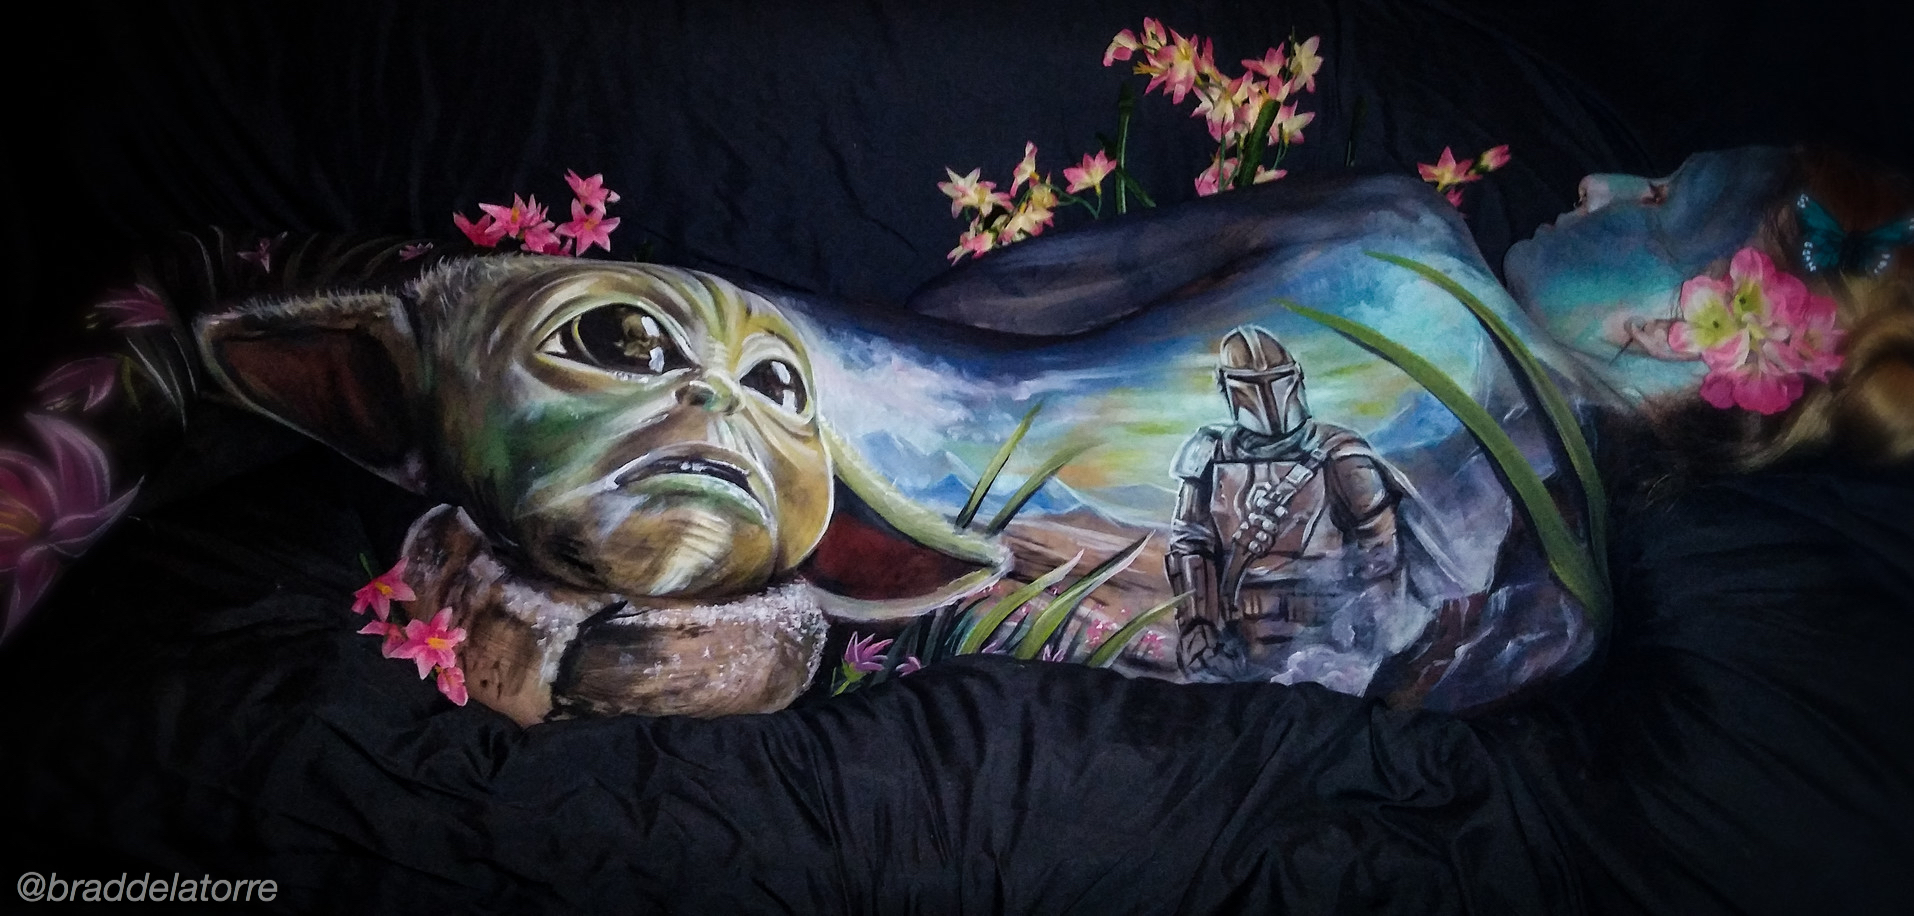 May the 4th Be Floral Skin City Contest - Brad De La Torre from the USA - First Place